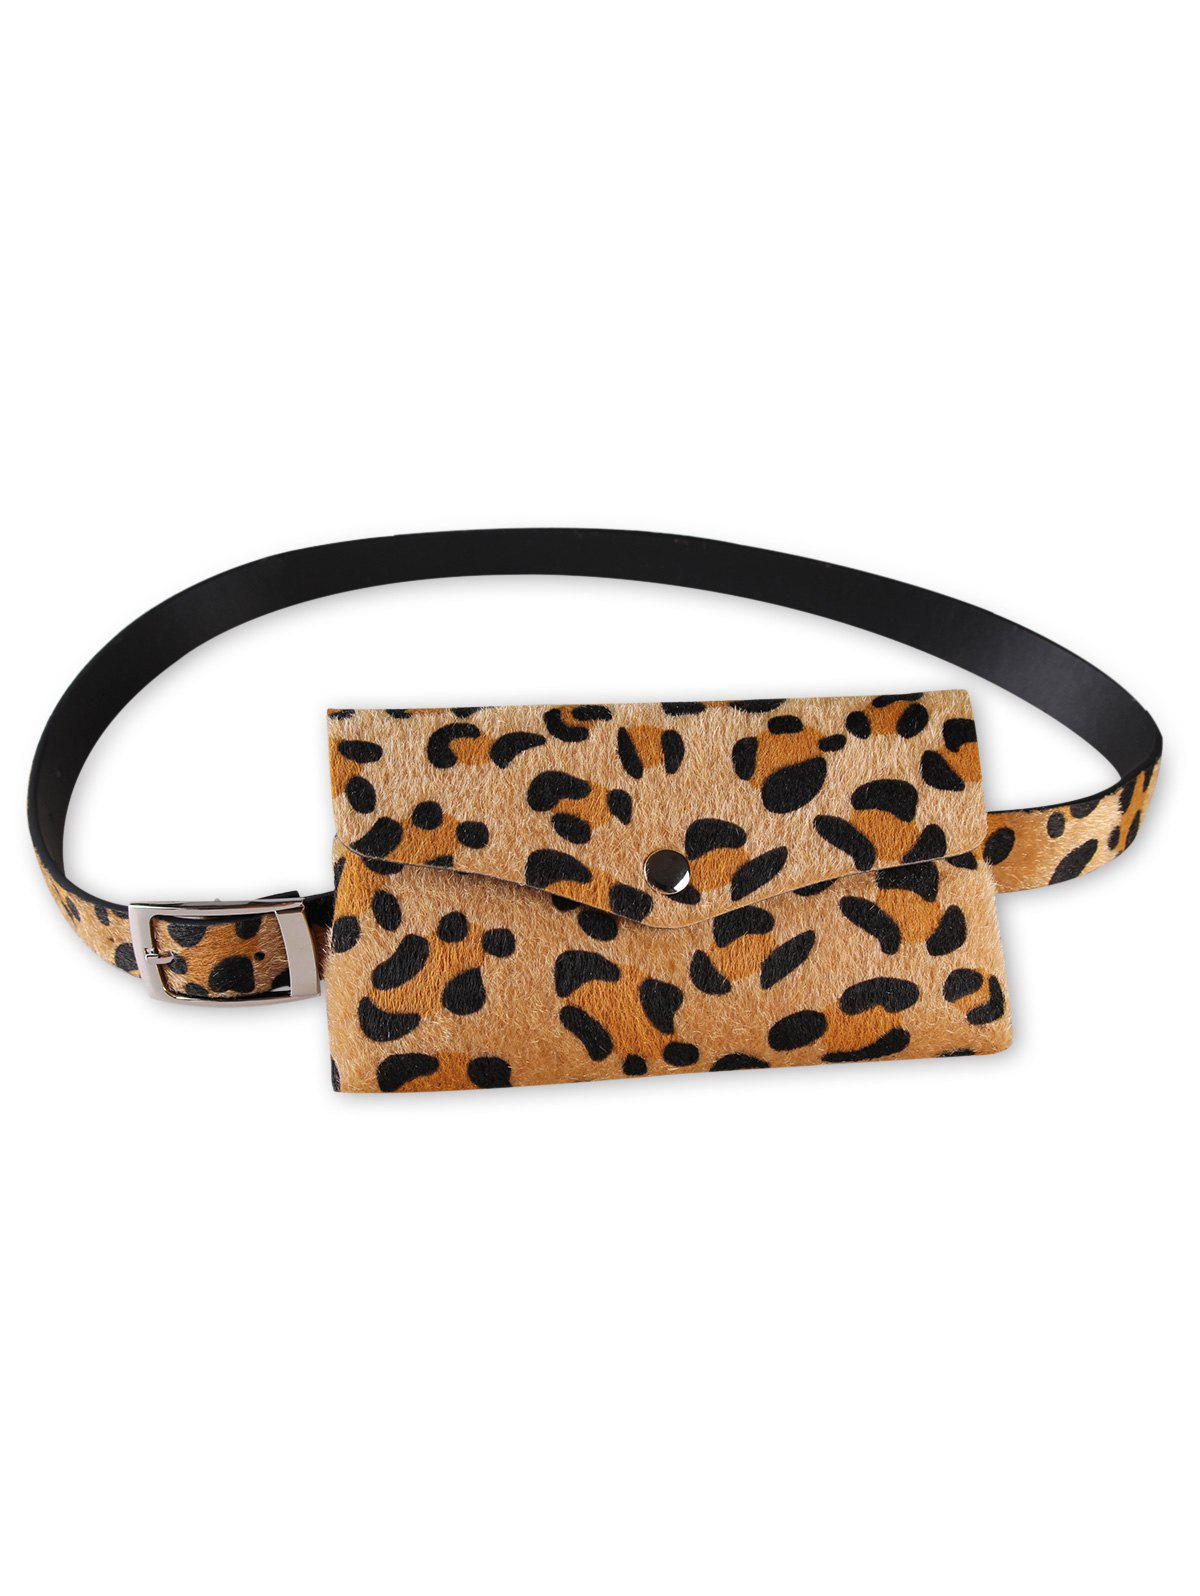 Chic Leopard Patter Fanny Pack Waist Belt Bag